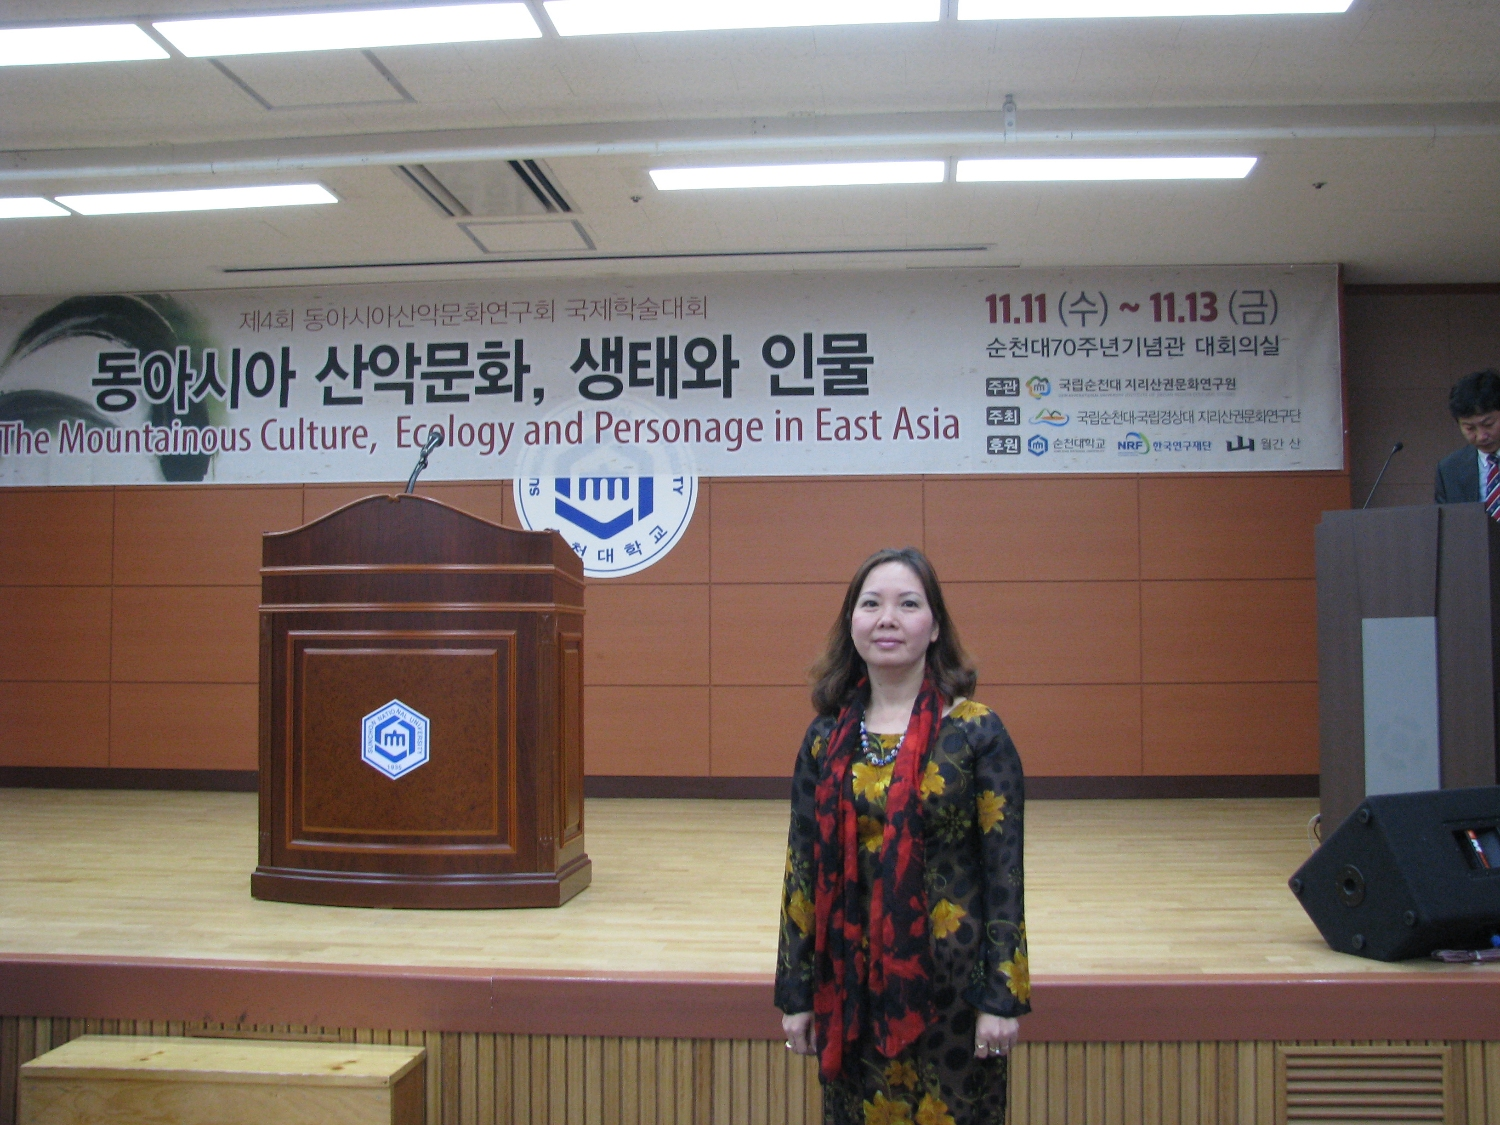 International Mountain Culture Conference